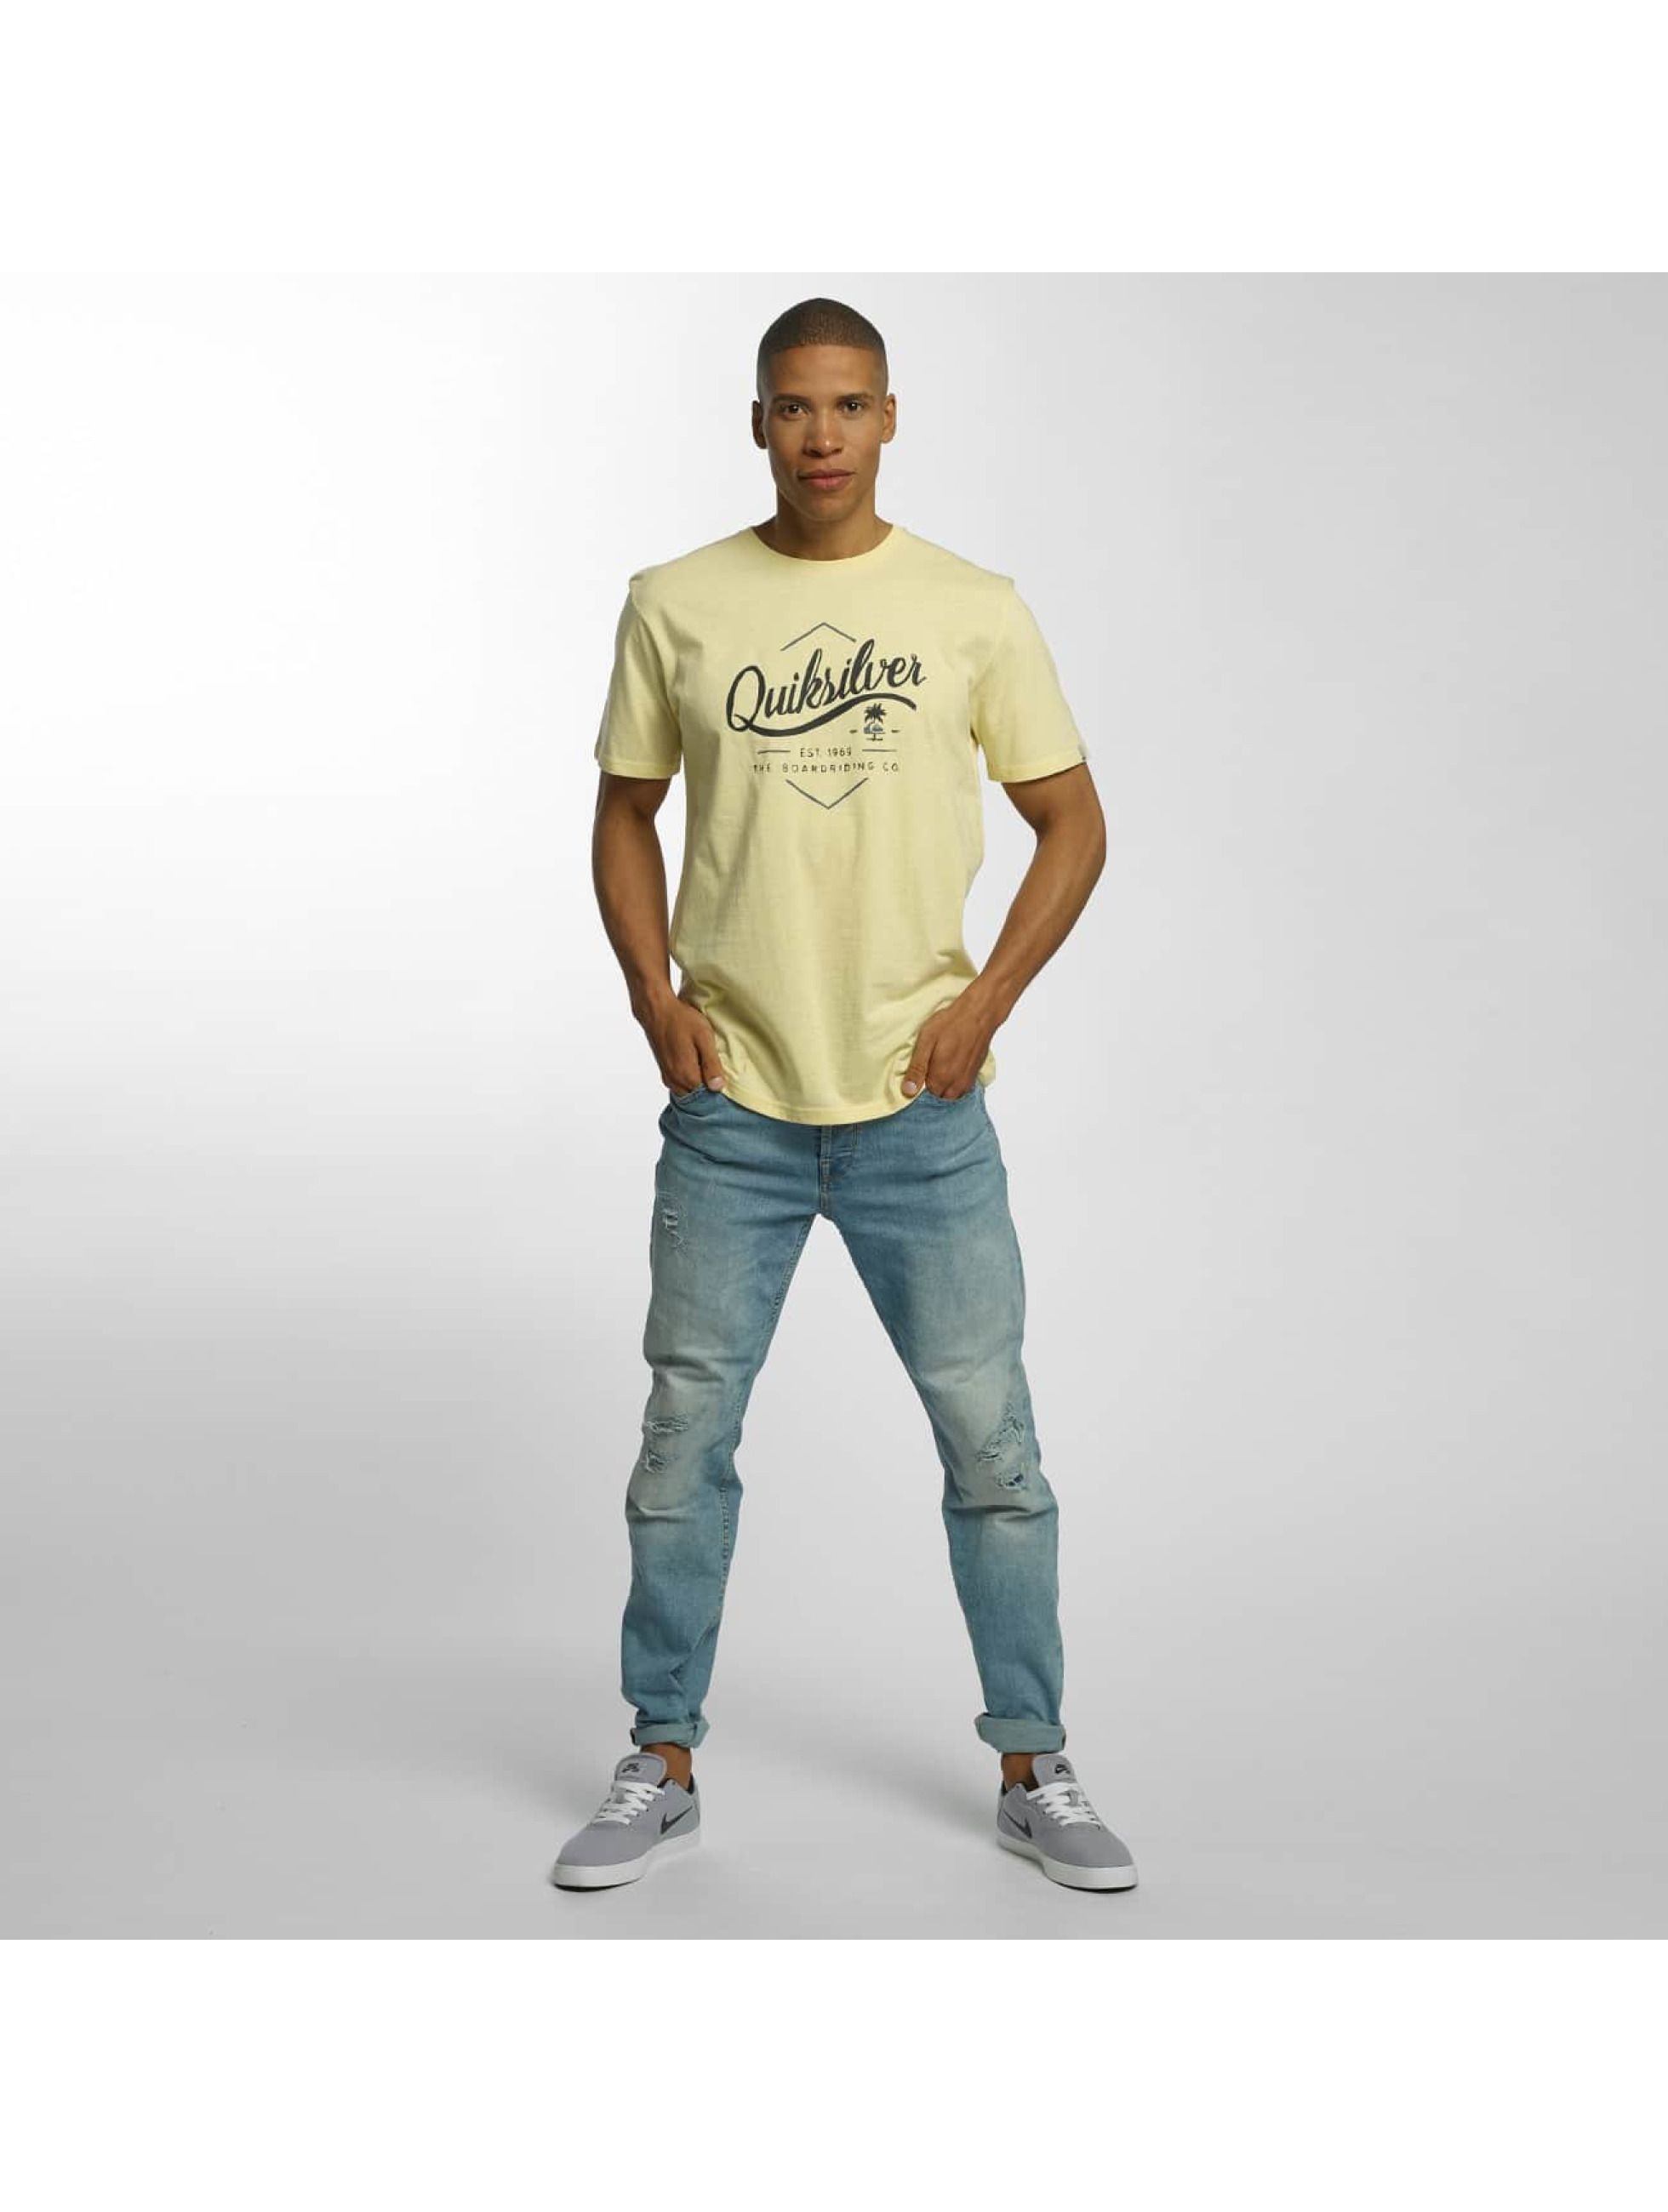 Quiksilver T-paidat Classic Sea Tales keltainen